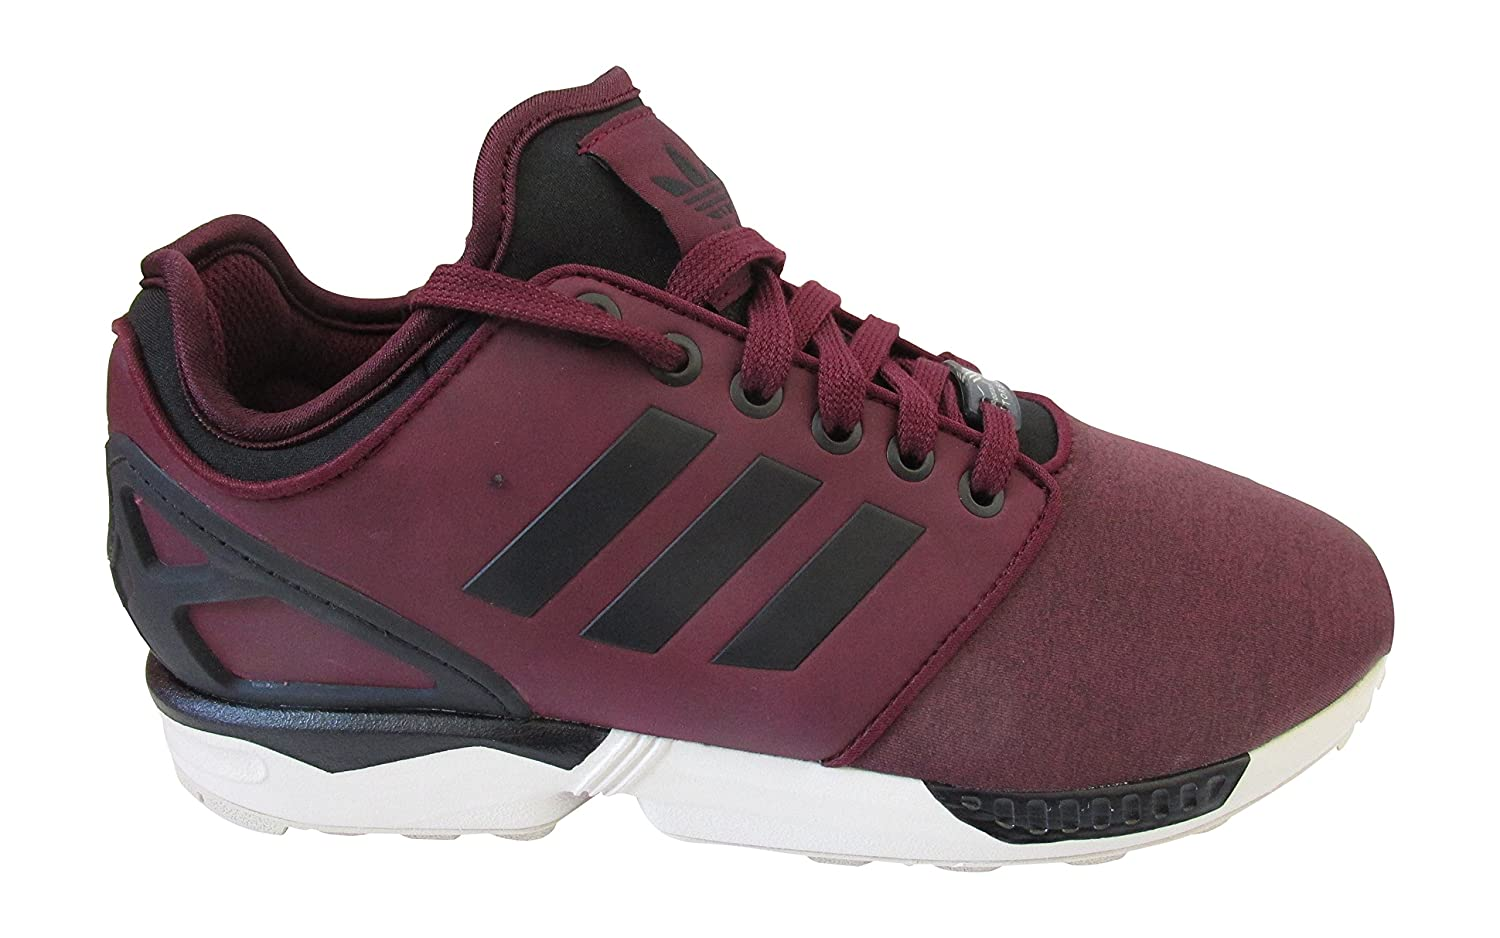 Adidas Zx Flux Nps 2.0 Marron